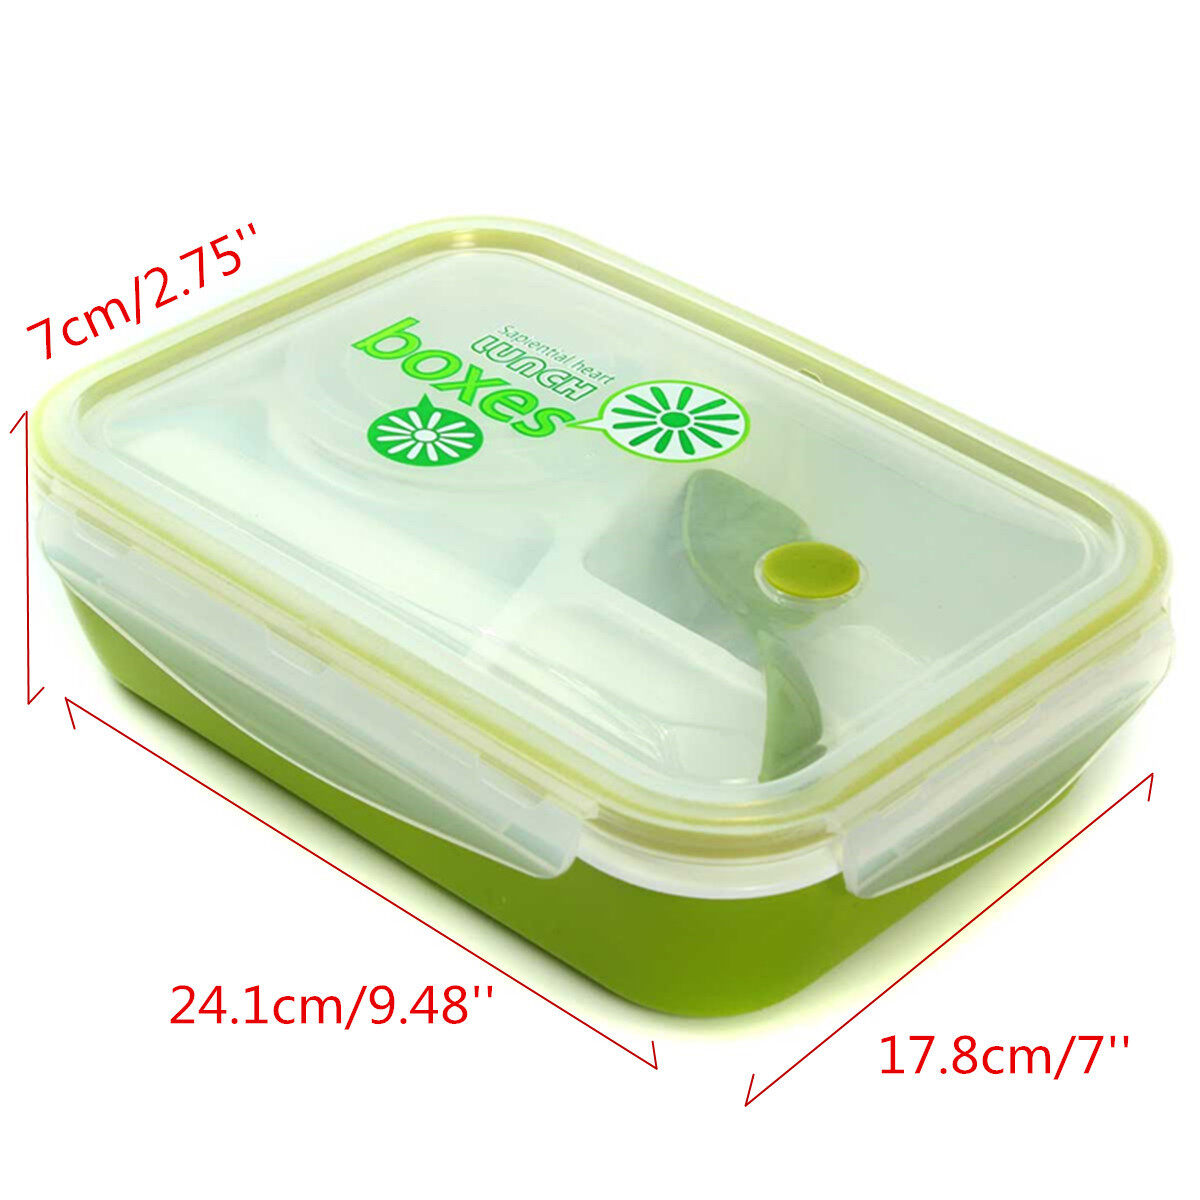 kids soup bowl spoon food picnic container lunch bento box microwave tableware green lazada. Black Bedroom Furniture Sets. Home Design Ideas